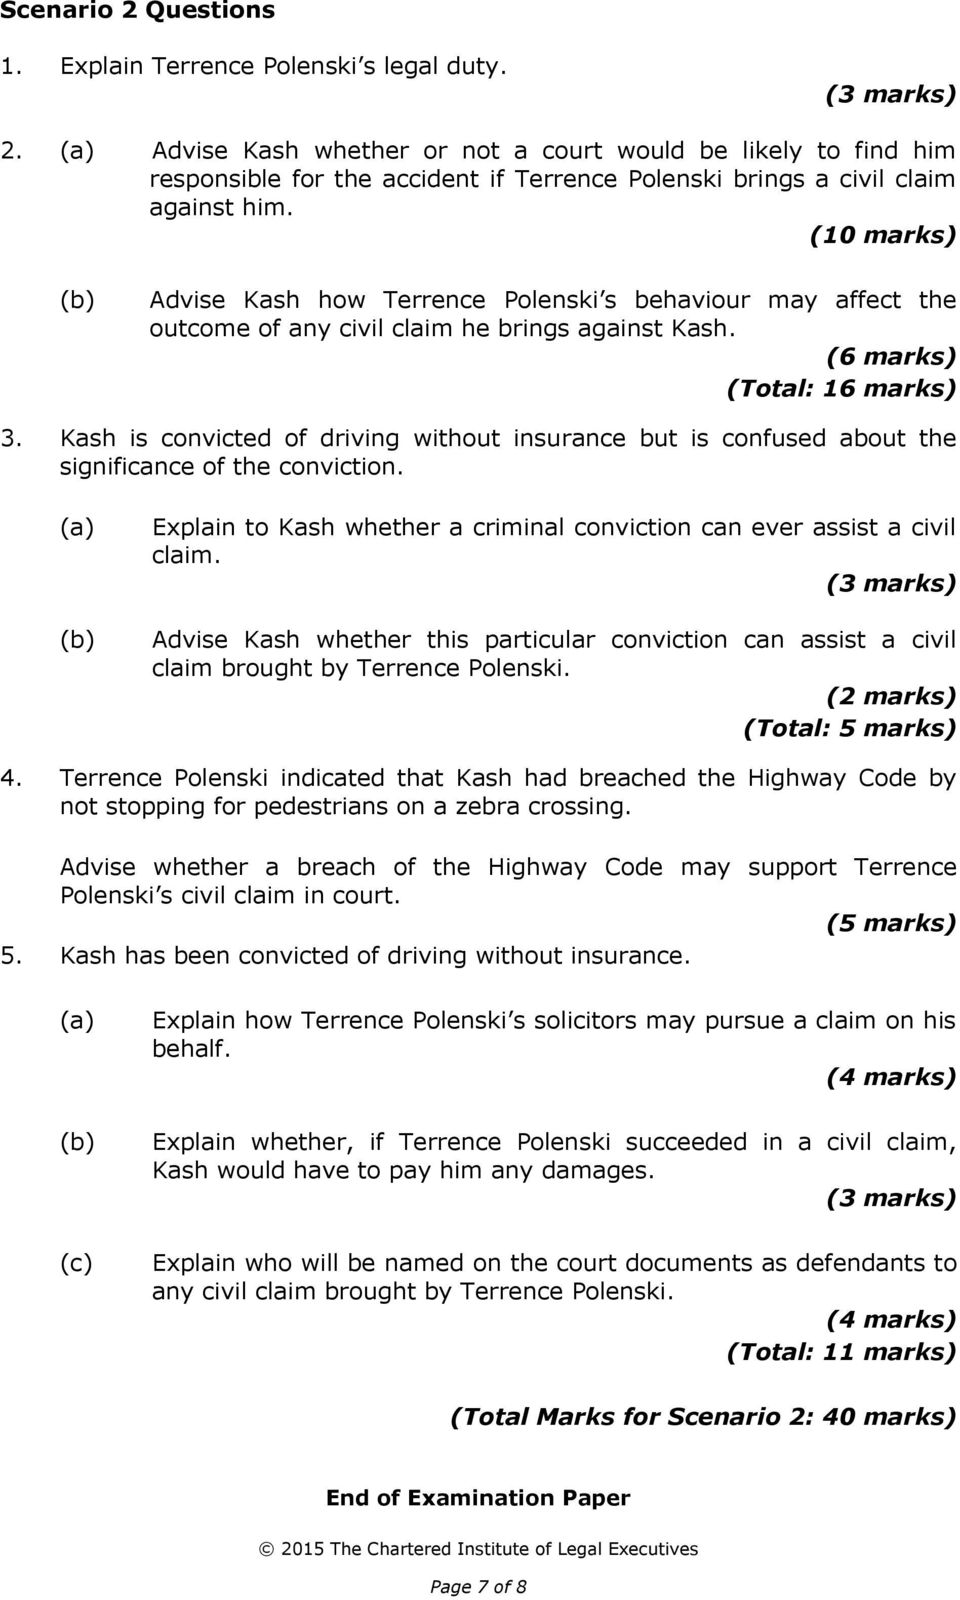 Kash is convicted of driving without insurance but is confused about the significance of the conviction. (a) Explain to Kash whether a criminal conviction can ever assist a civil claim.